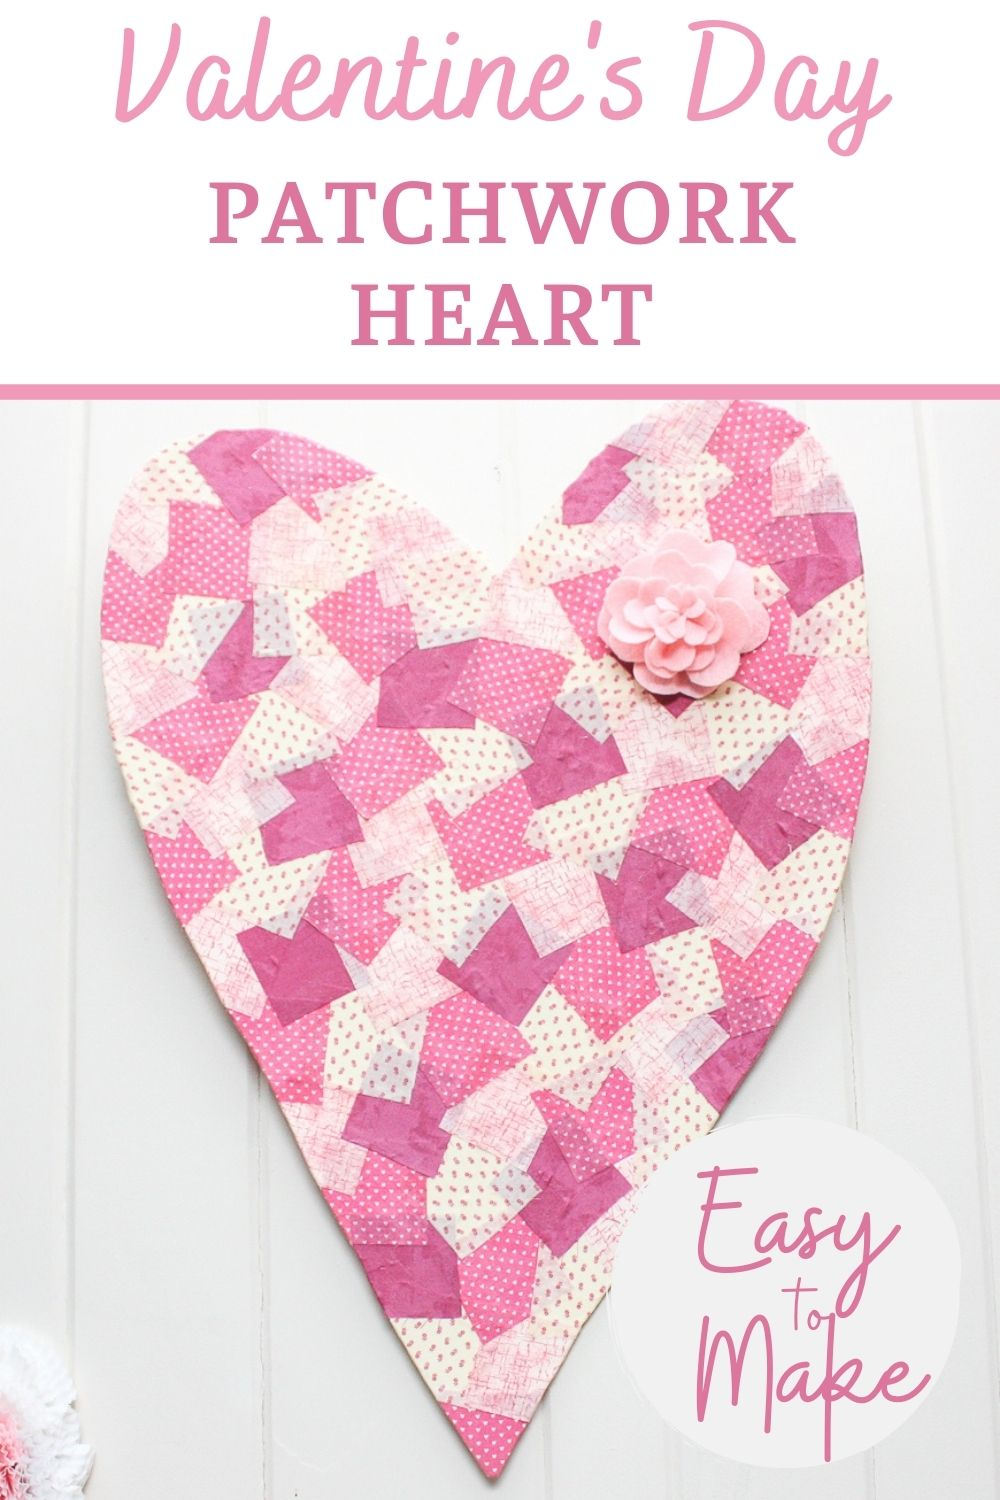 Learn how to make a Valentine's Day heart that looks like patchwork.  Squares of fabrics in shades of pink and cream are added to a heart cut from a sheet of foam board.  A pink felt flower is the perfect finishing touch.  Hang this on a door, wall, or over a mantel for a fun Valentine's Day decorations. #valentinesday #valentinesdaycraft #valentinesdaydecor via @spaula